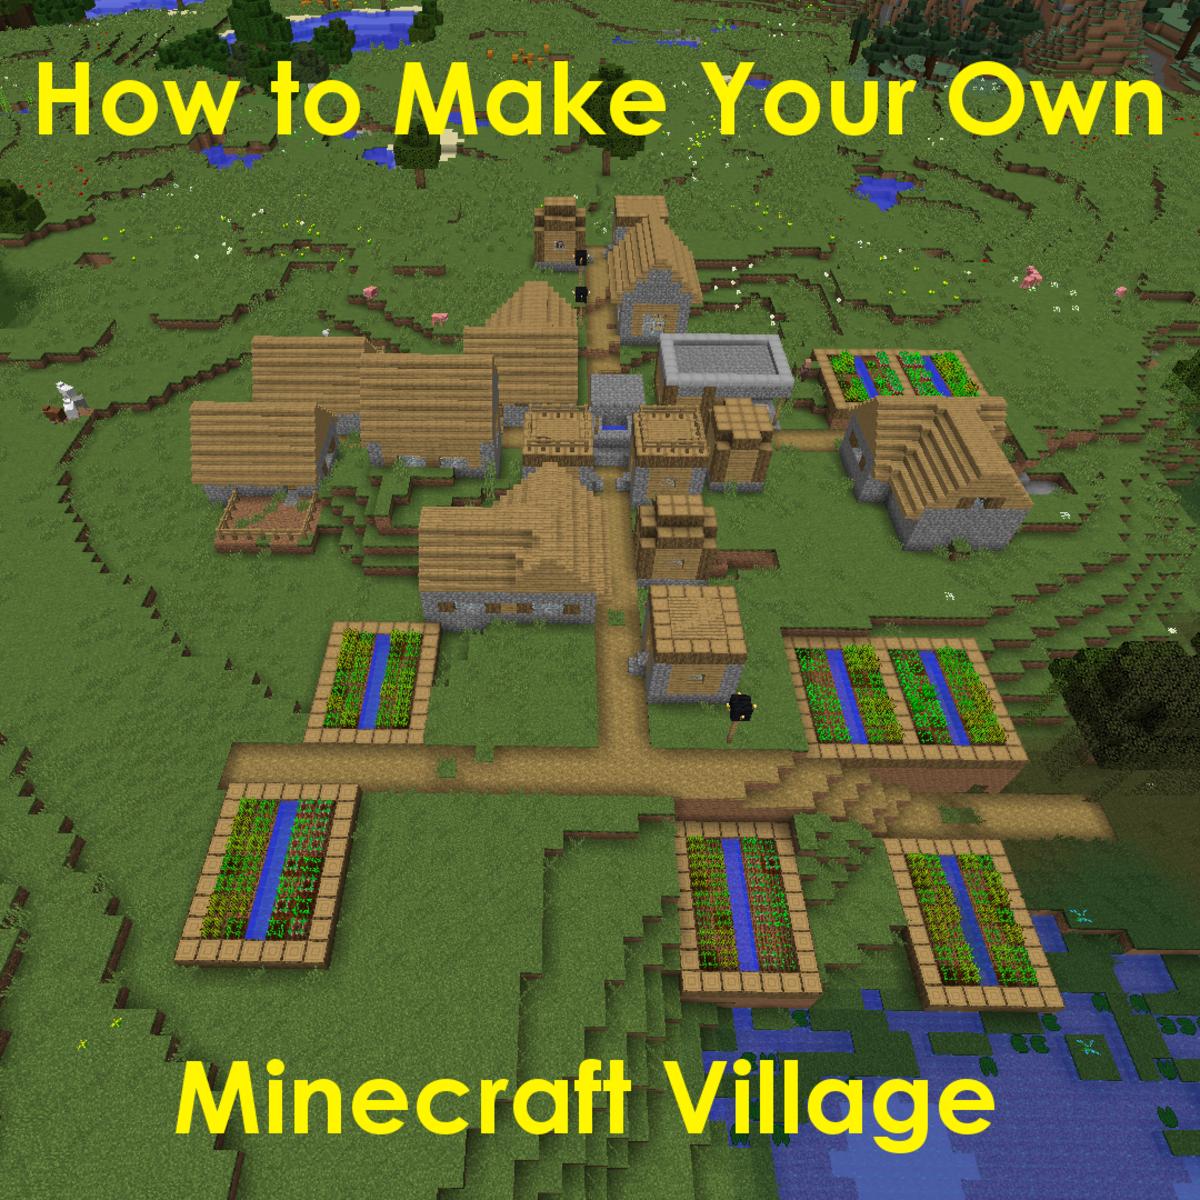 How To Make Your Own Village In Minecraft Levelskip Video Games